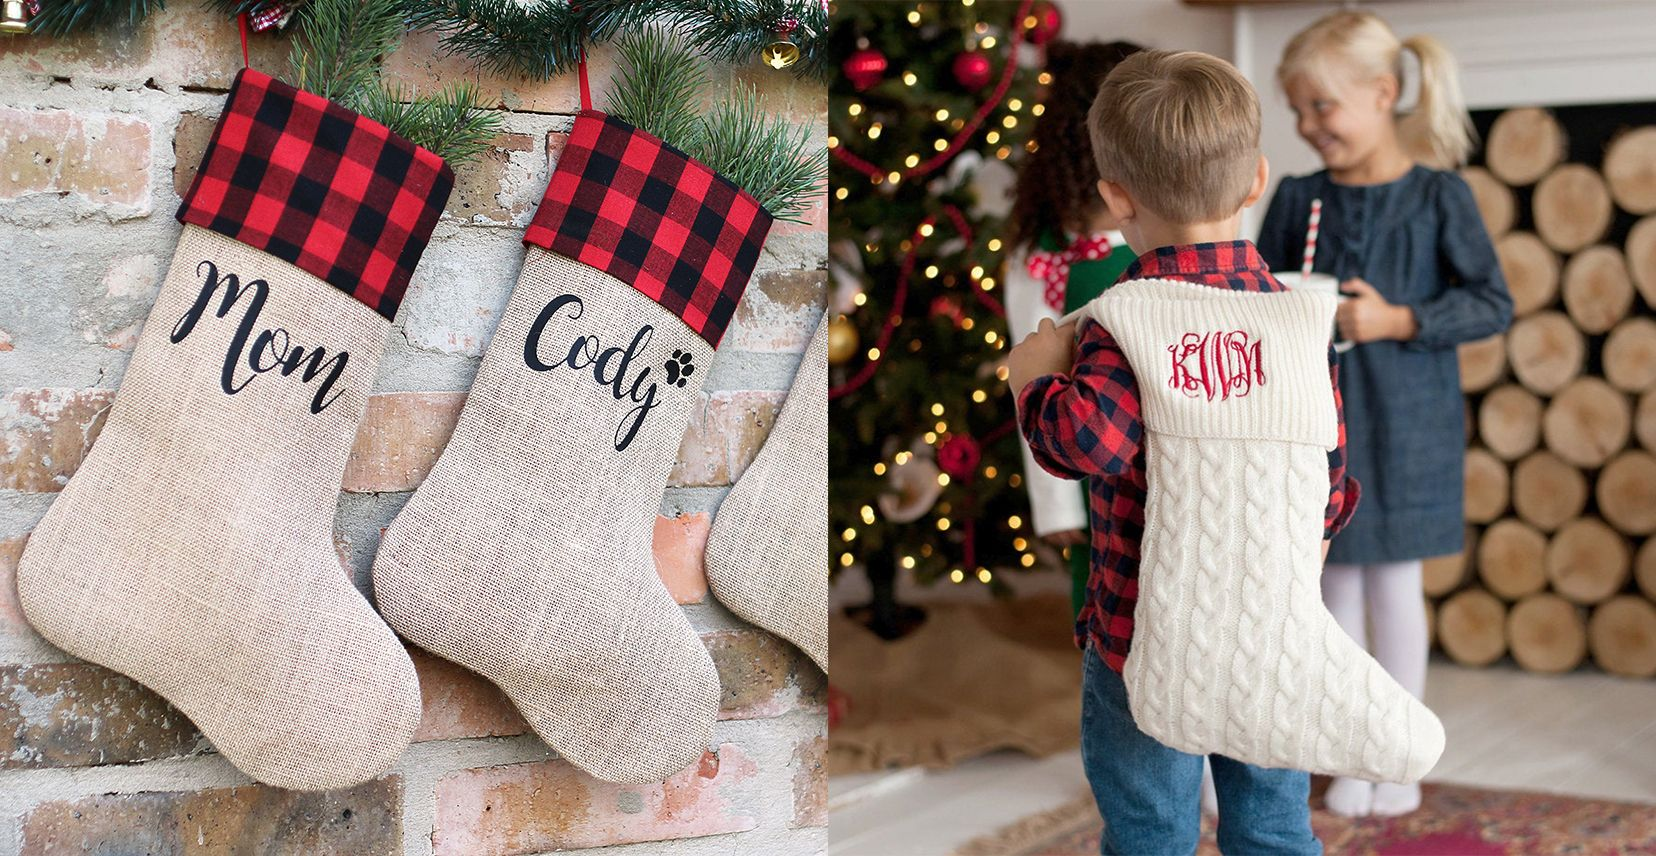 20 Personalized Stockings for Every Member of the Family